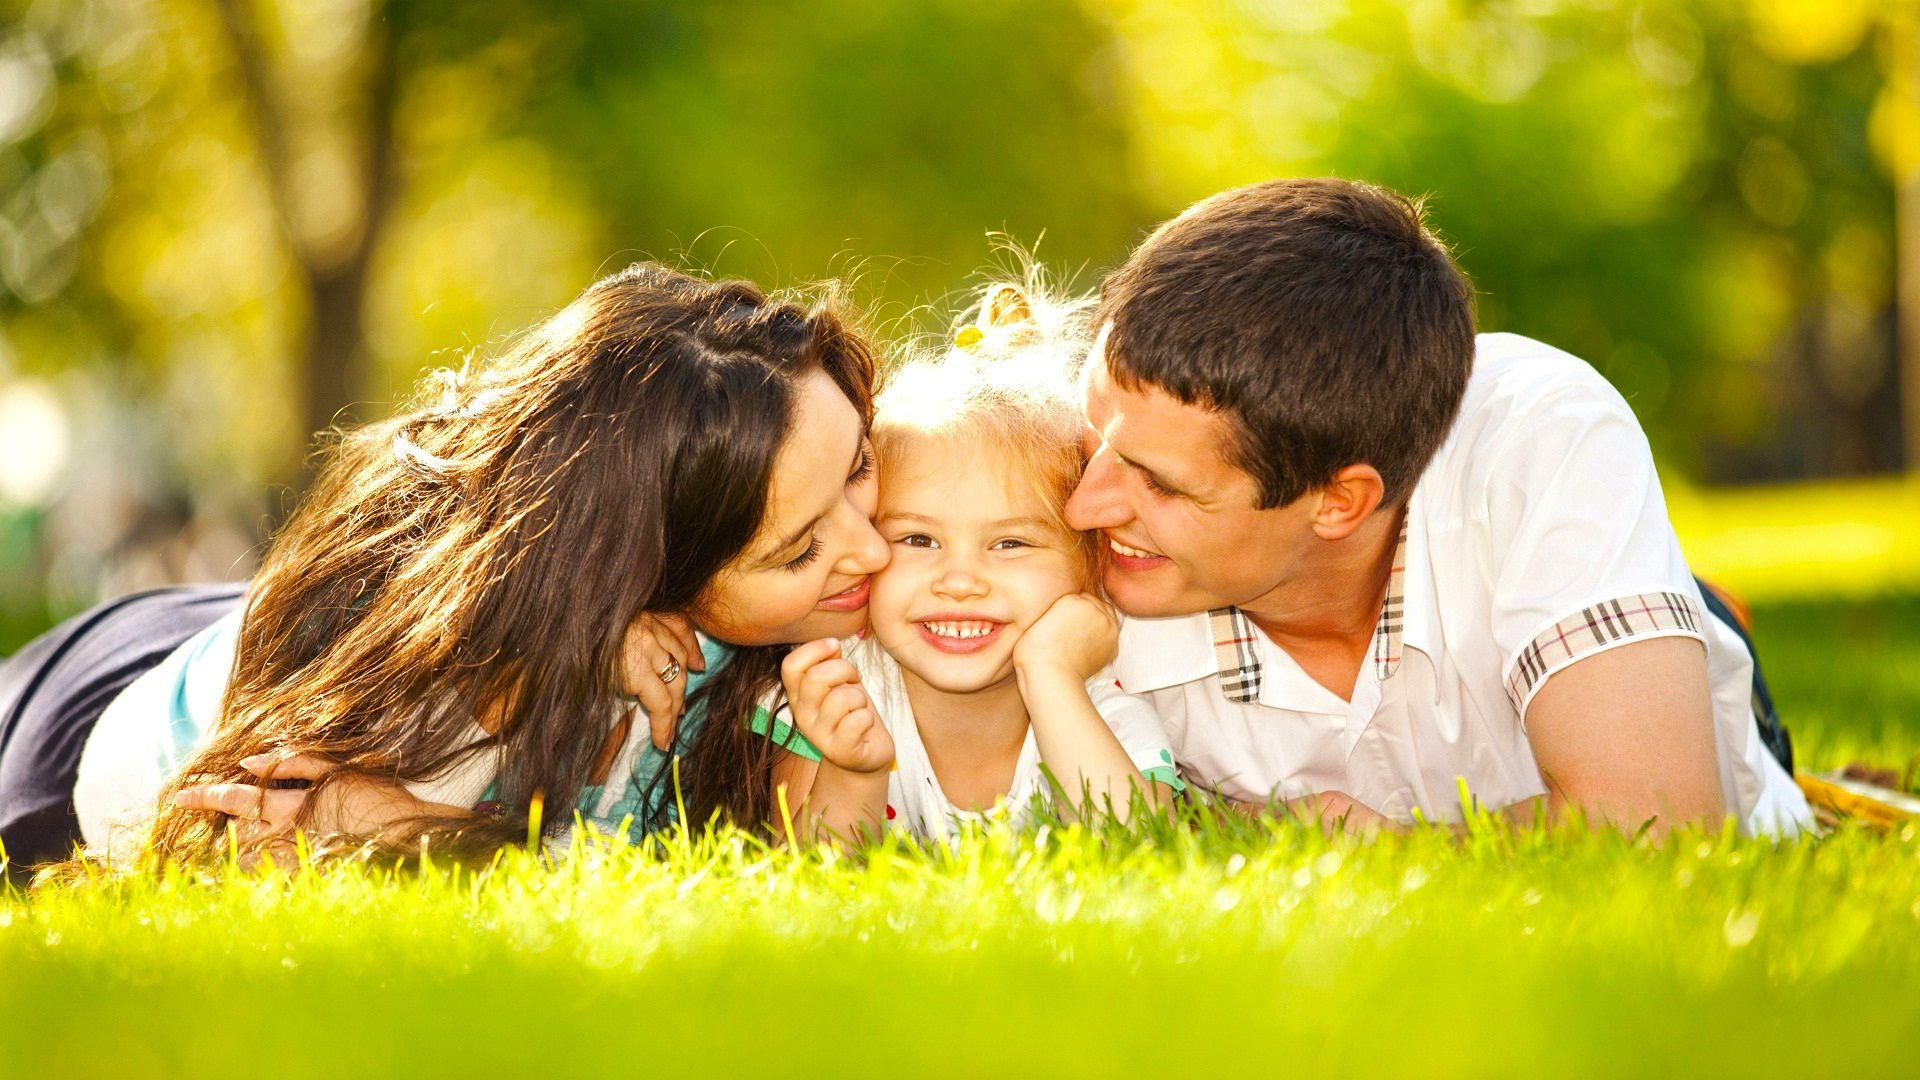 Happy family couple and kid download hd wallpapers